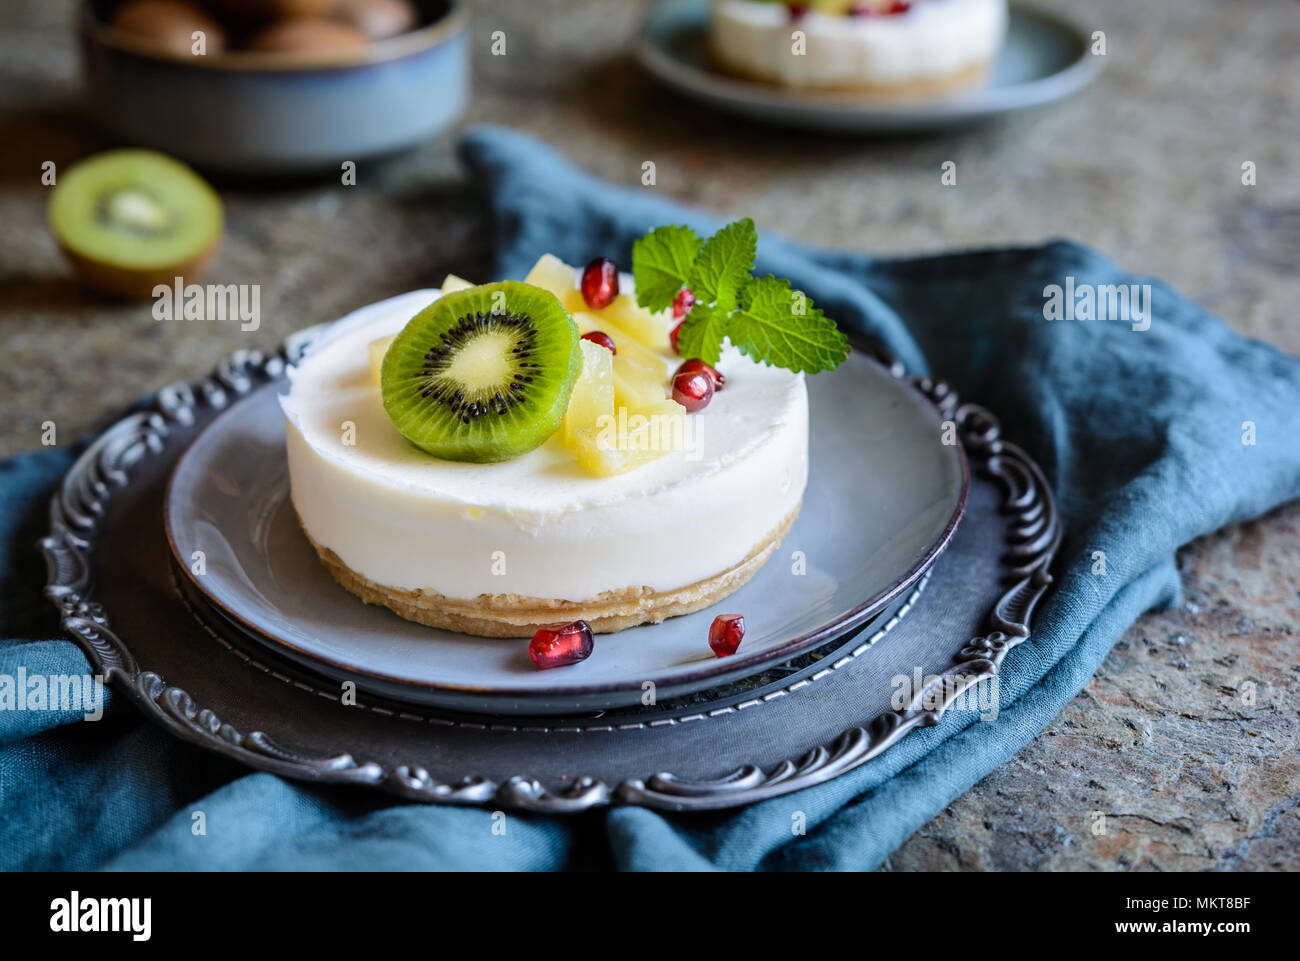 Delicious unbaked mini cheesecakes topped with pineapple, kiwi and pomegranate - Stock Image